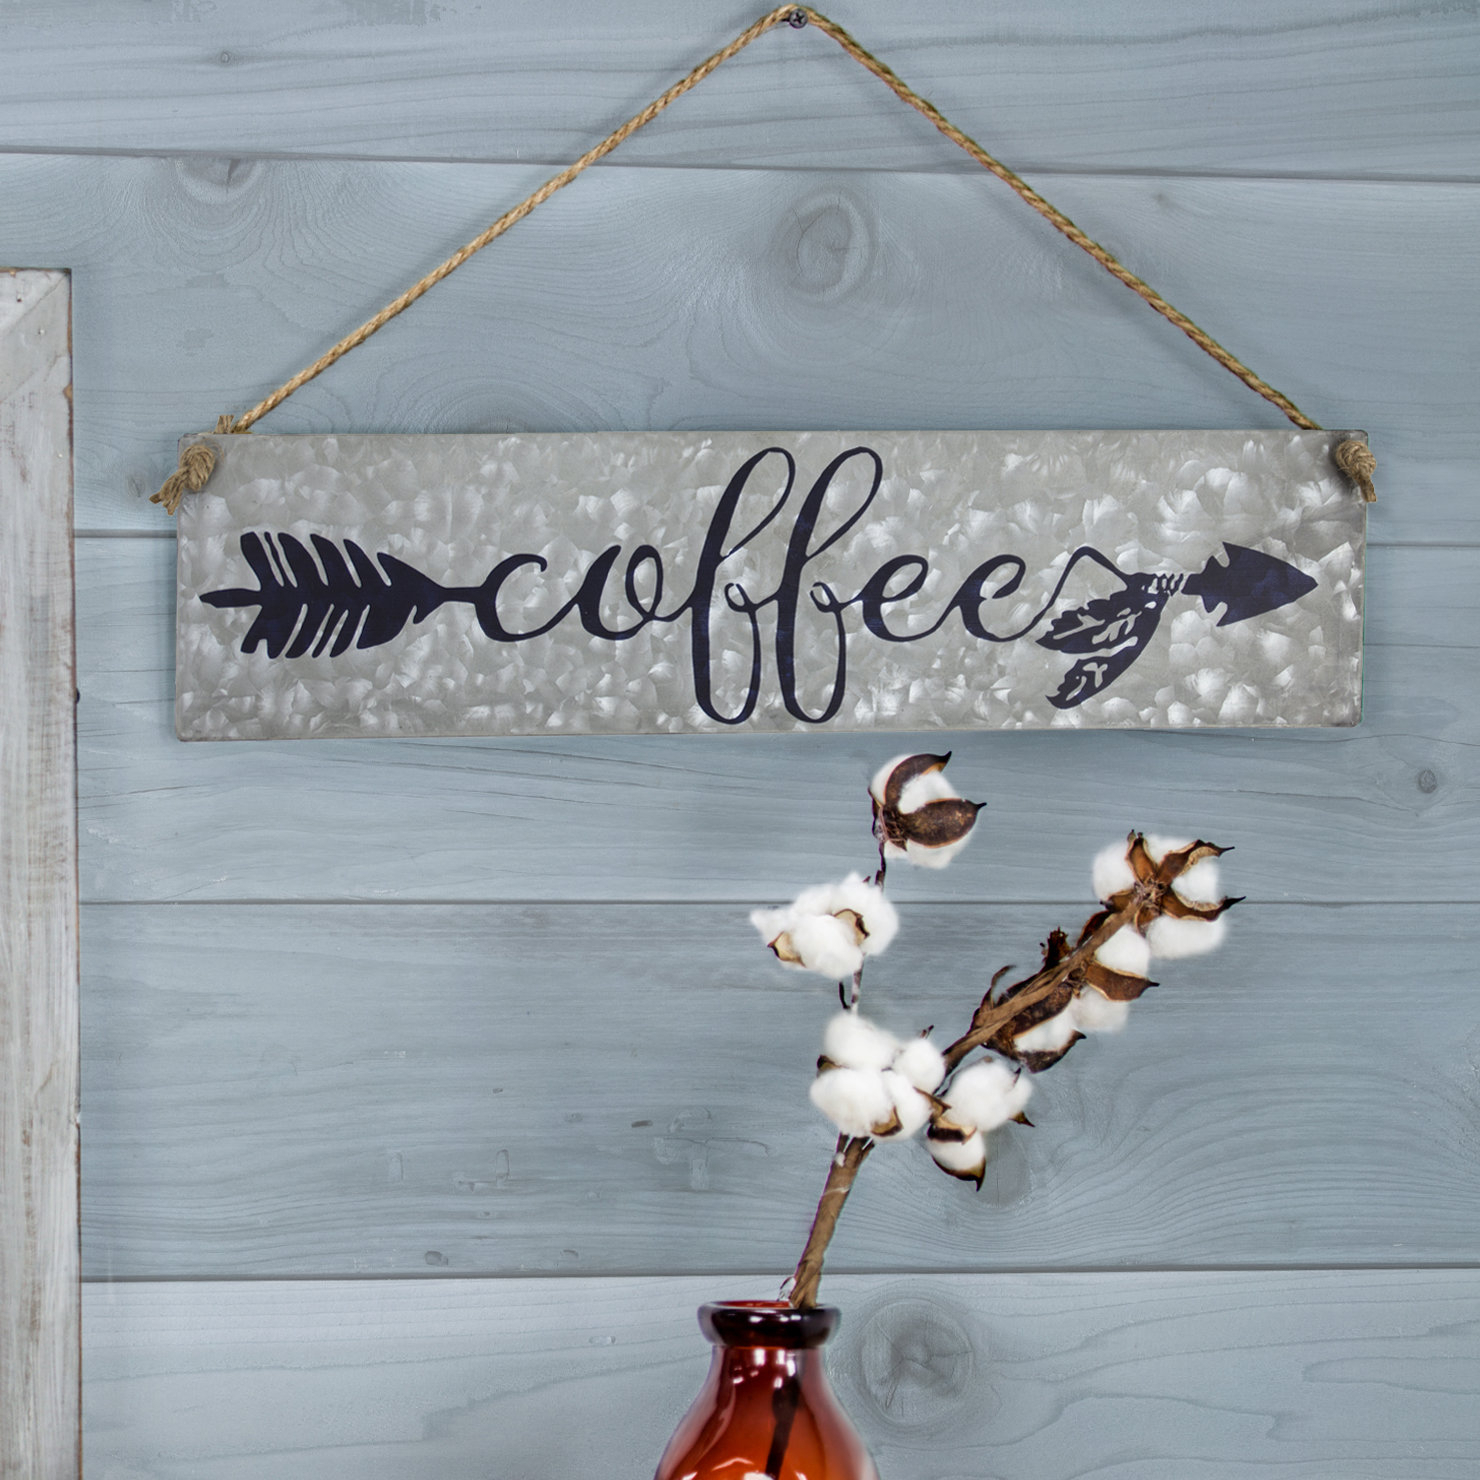 Coffee Signs | Wayfair with regard to Coffee Sign With Rebar Wall Decor (Image 5 of 30)